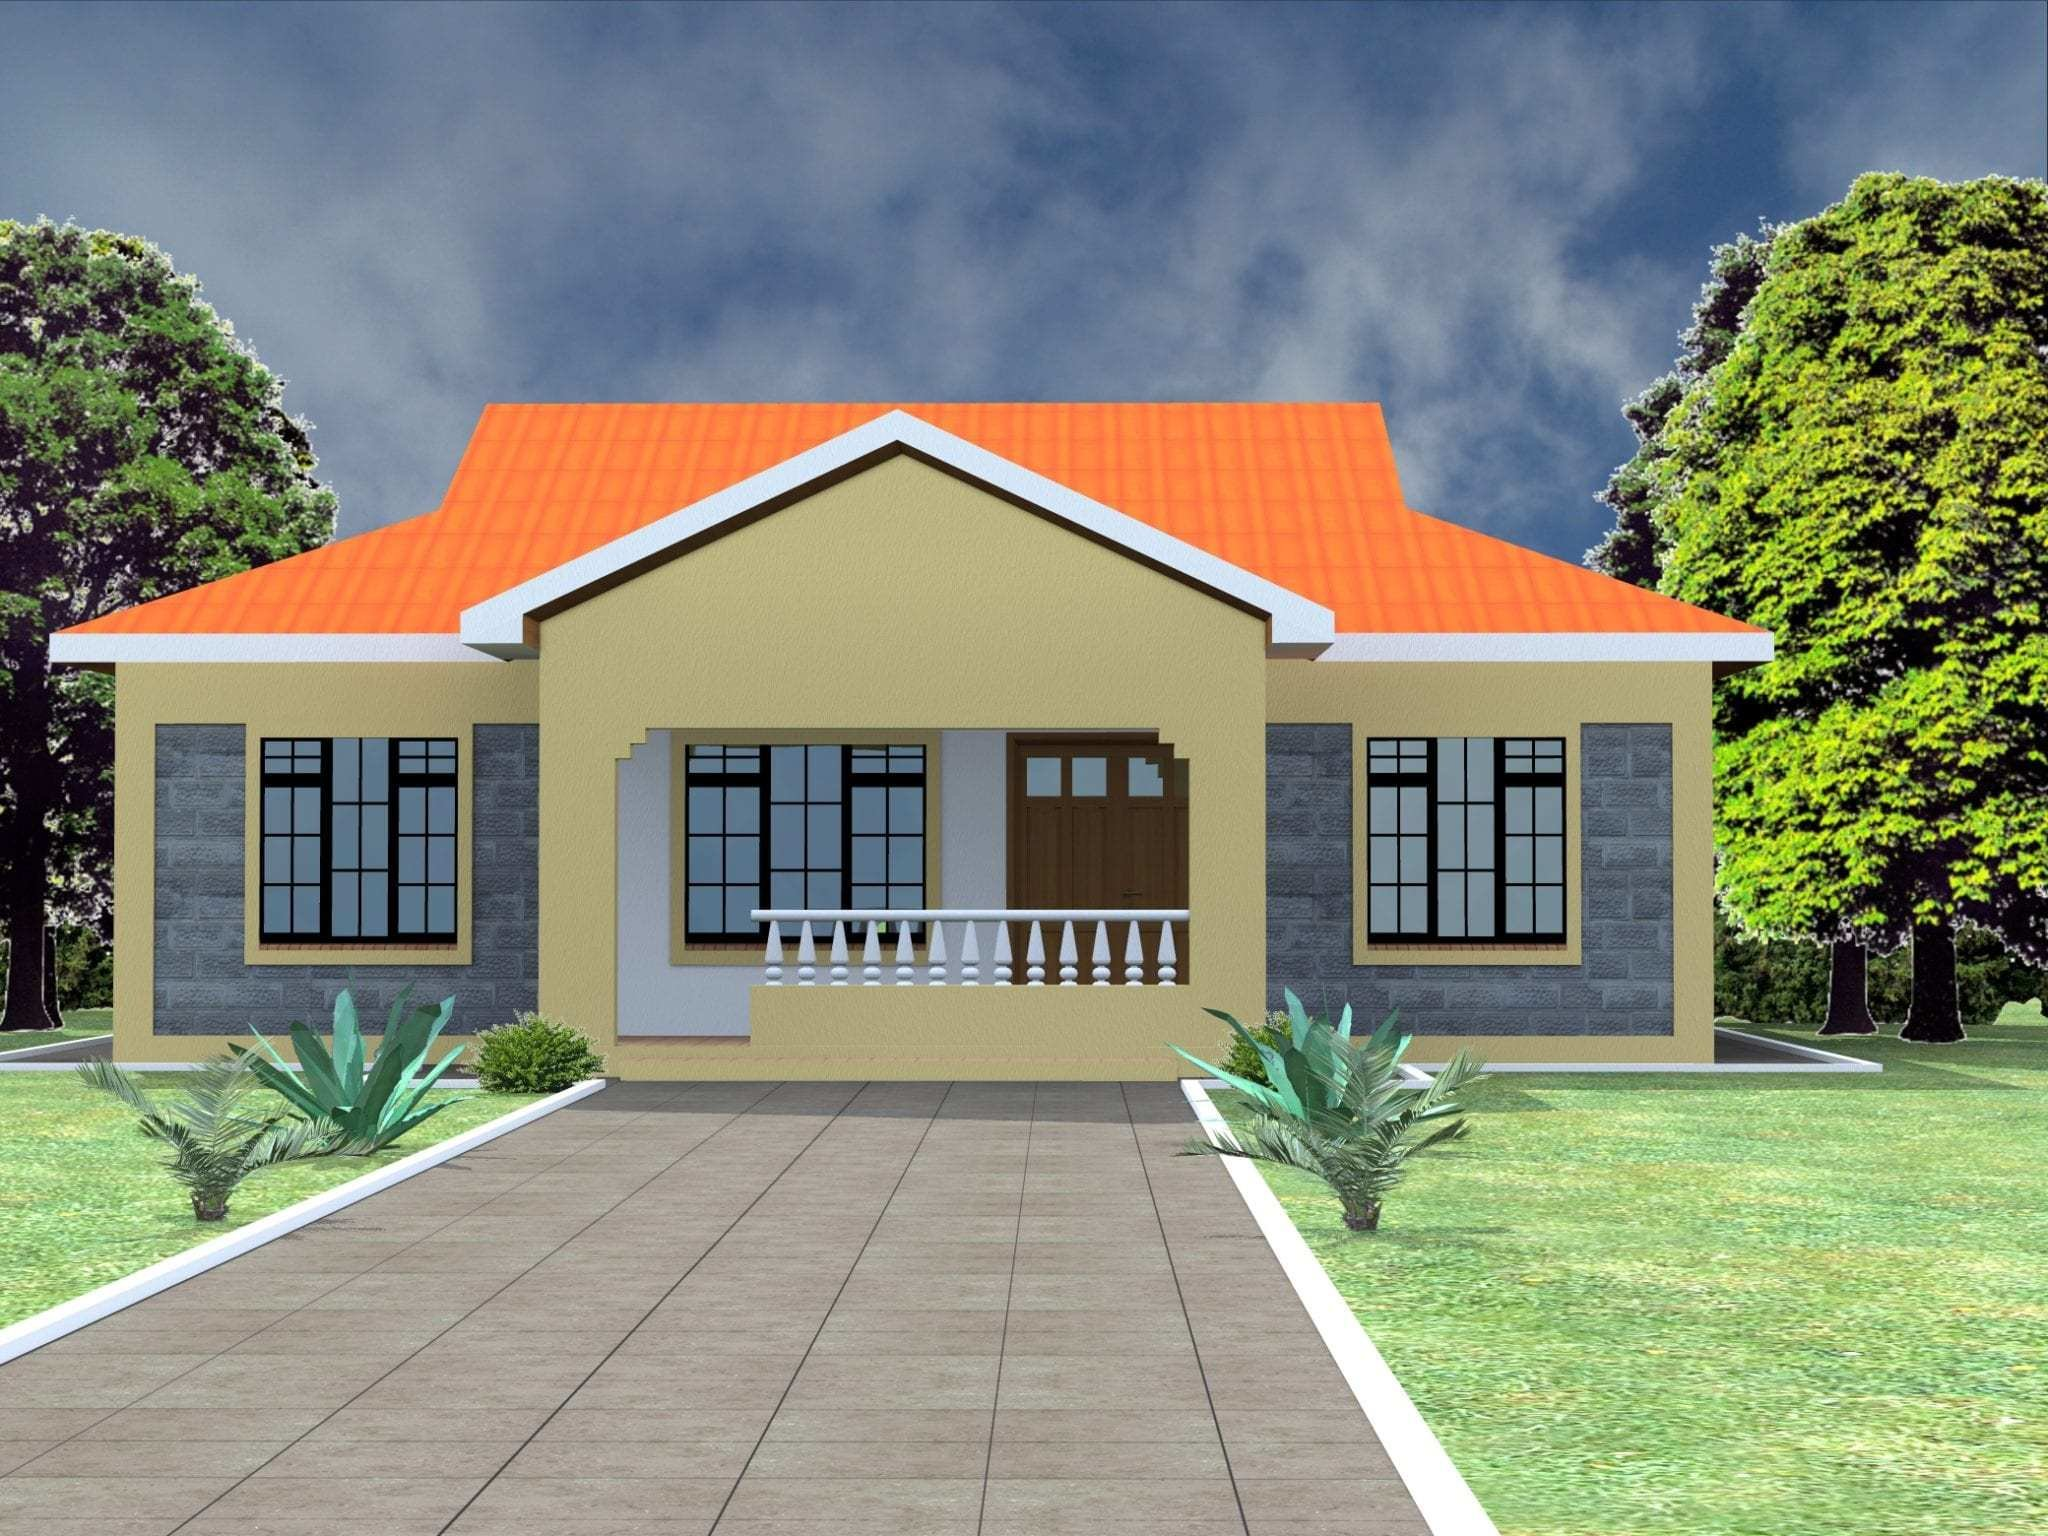 Best Low Budget Modern 3 Bedroom House Design – Bm Design With Pictures